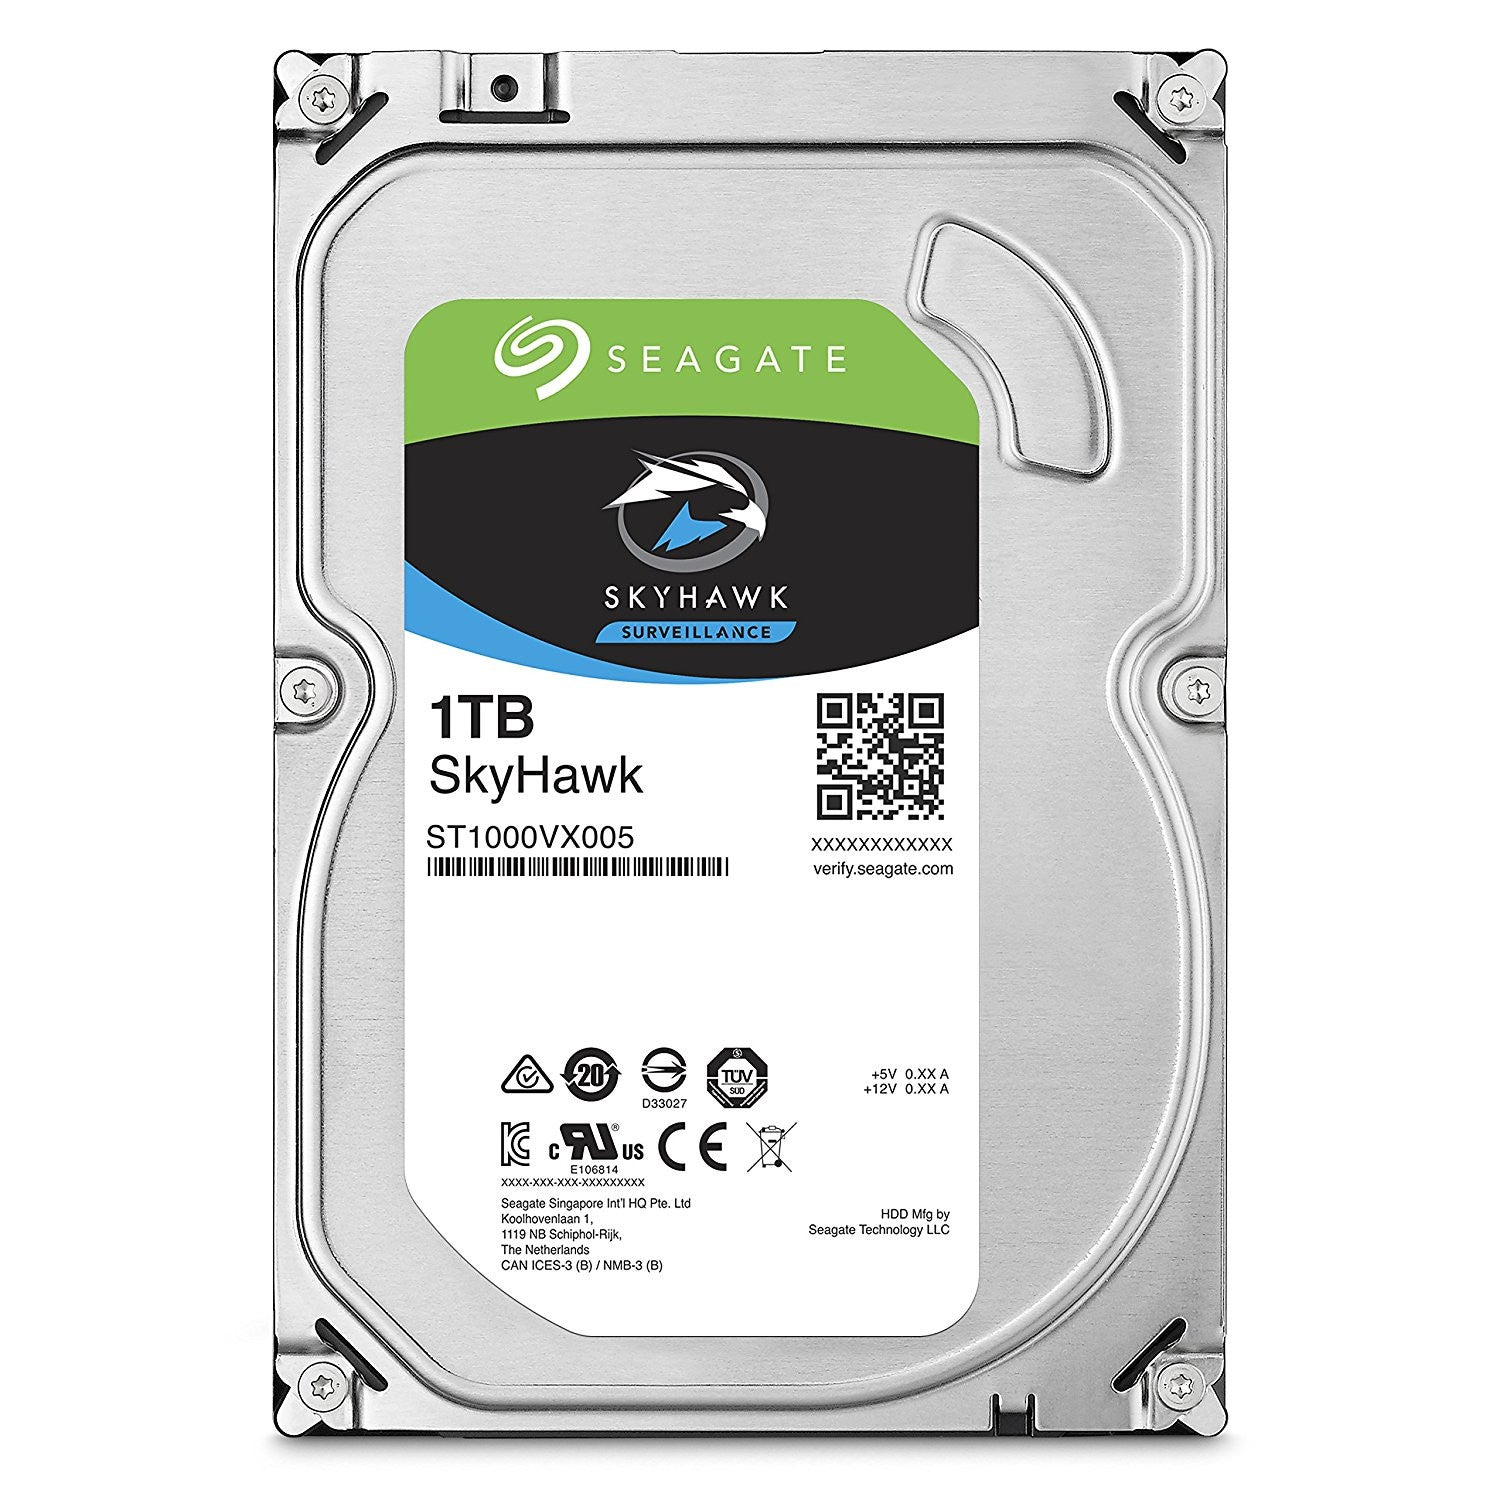 Seagate SkyHawk 1TB Surveillance Hard Drive - SATA 6Gb/s 64MB Cache 3.5-Inch Internal Drive (ST1000VX005) - Security-Smart-Shop